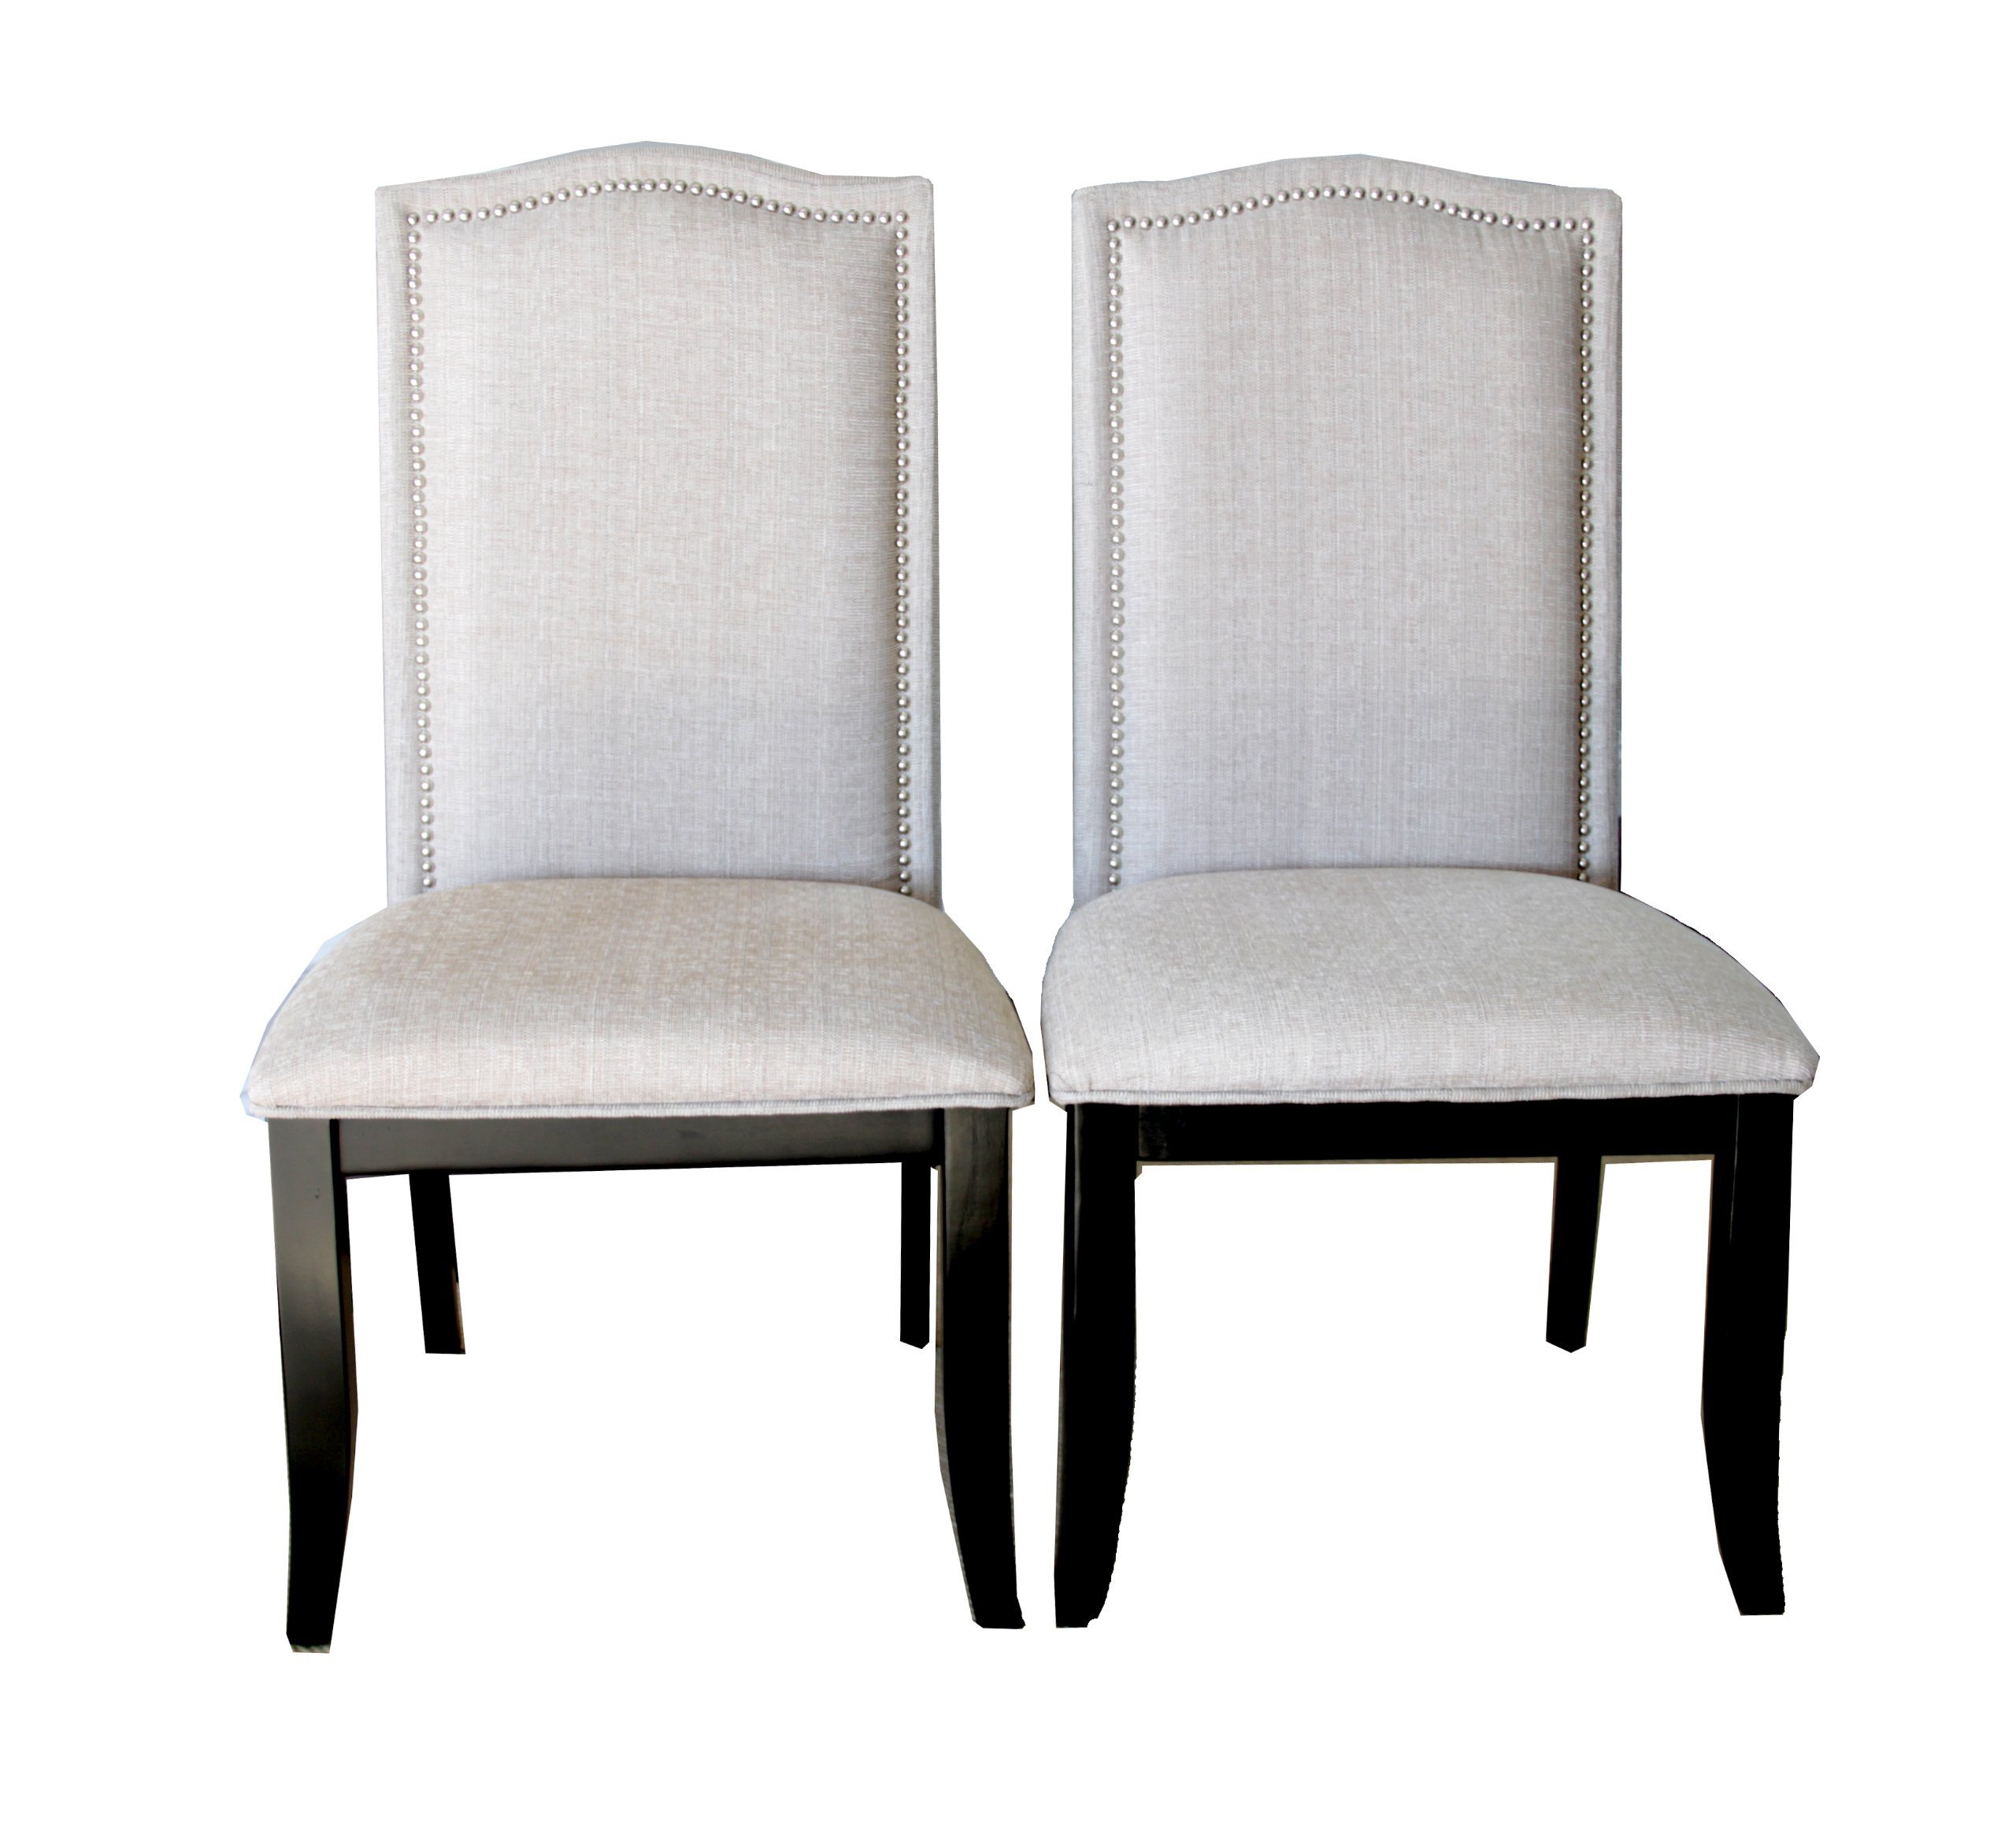 nailhead dining room chairs distressed leather set of 2 upholstered beige fabric with